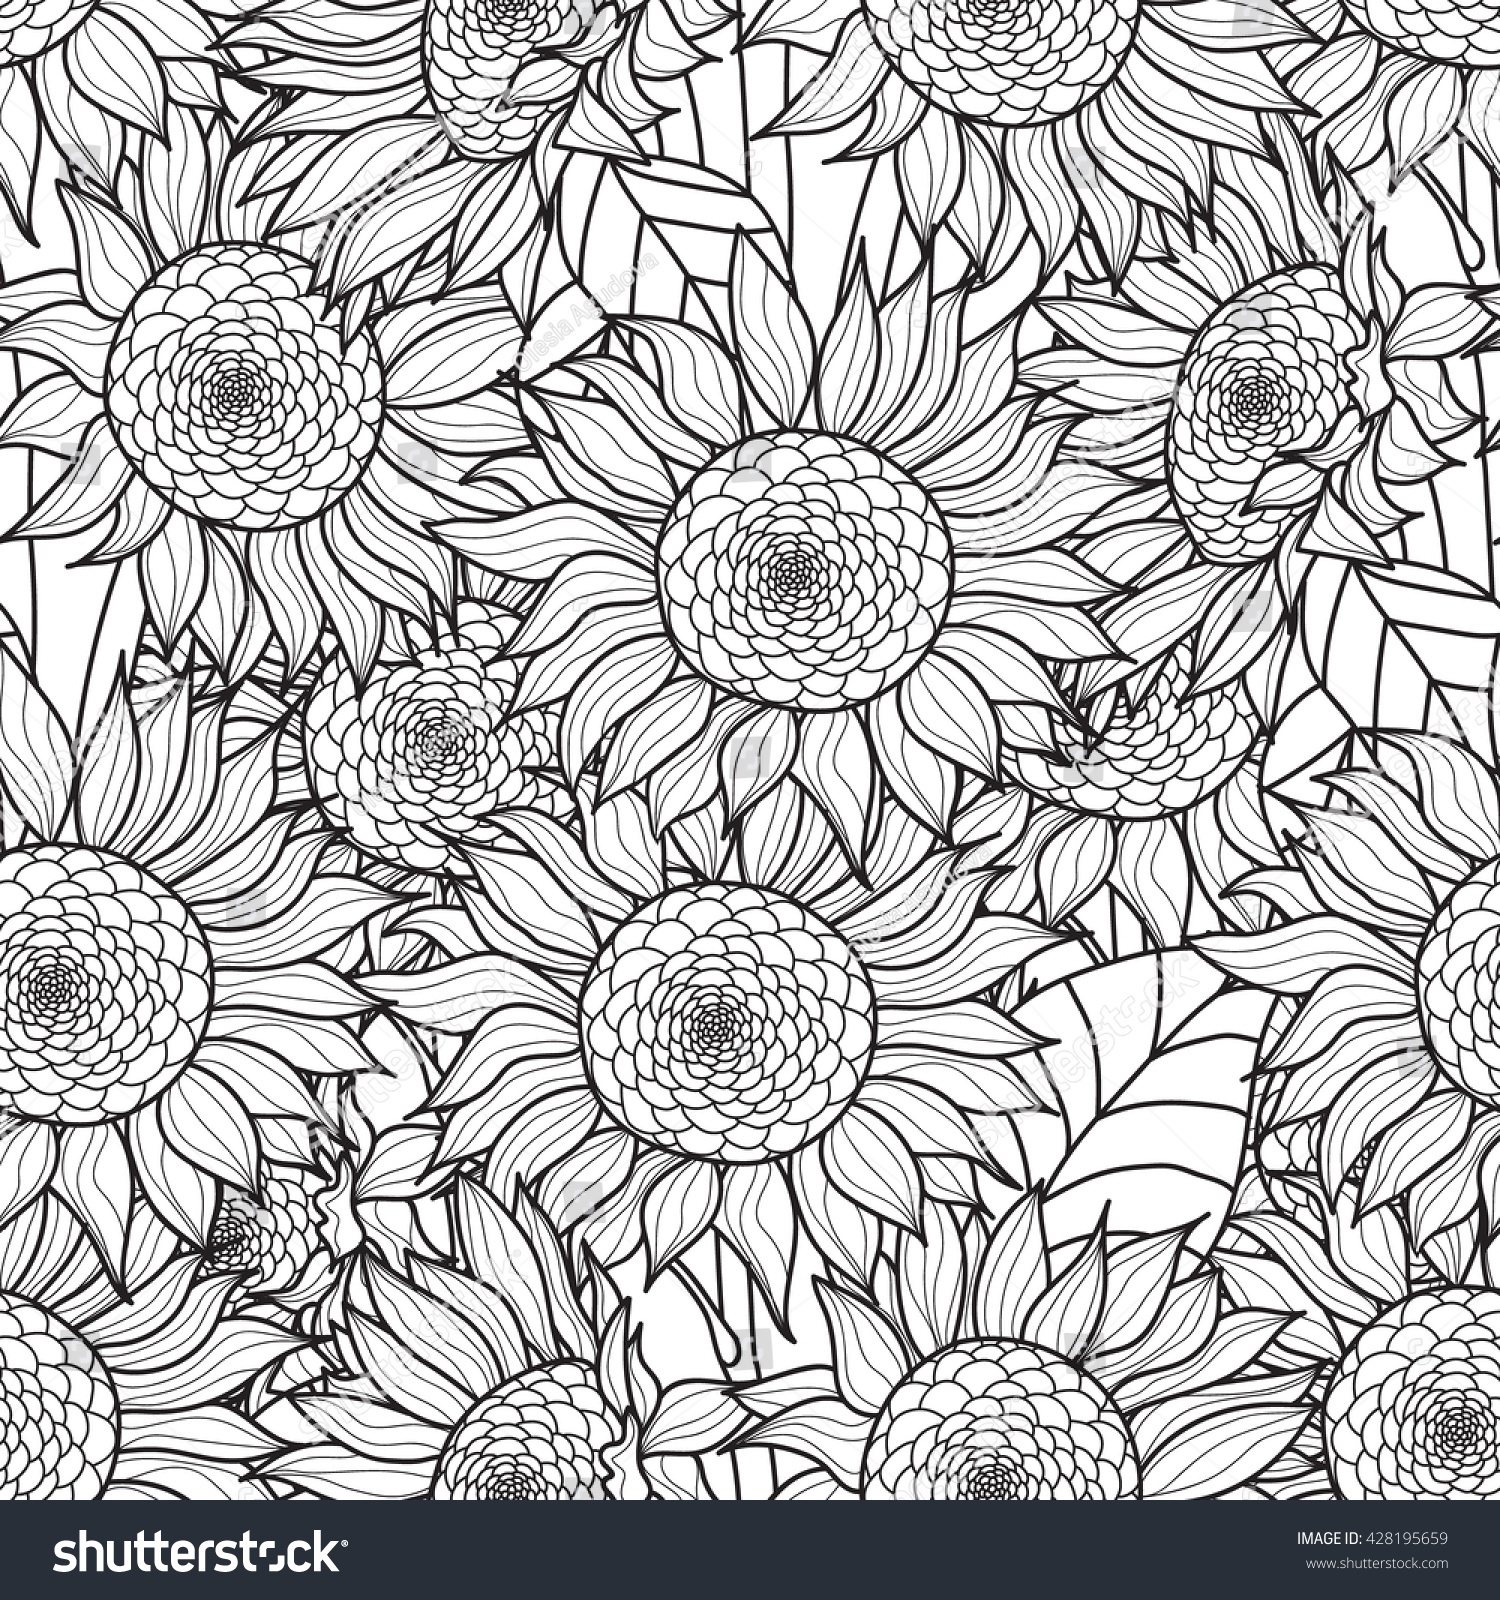 Pumpkins and Sunflower Digital Coloring Page Fall Adult | Etsy | 1600x1500